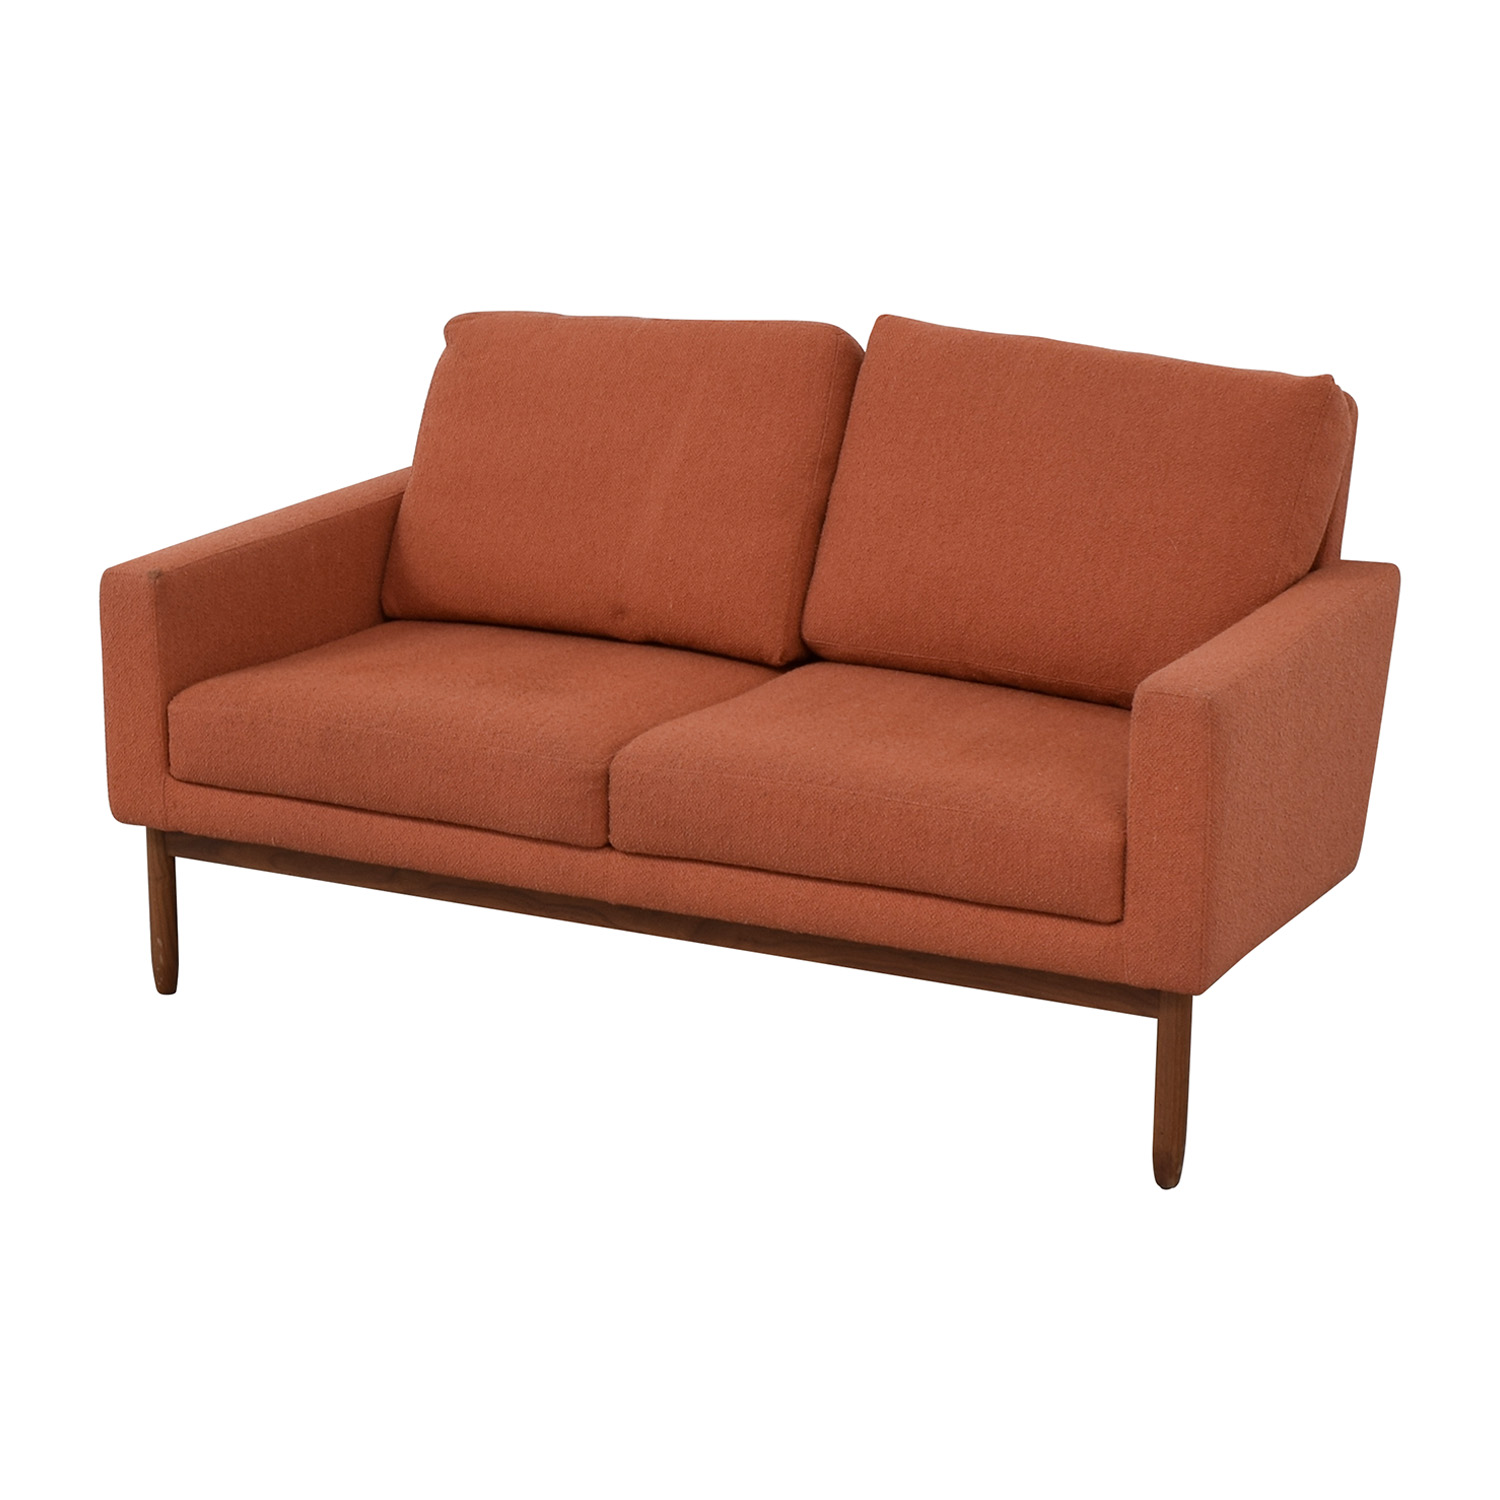 Design Within Reach Design Within Reach Raleigh Paprika Two-Cushion Sofa second hand